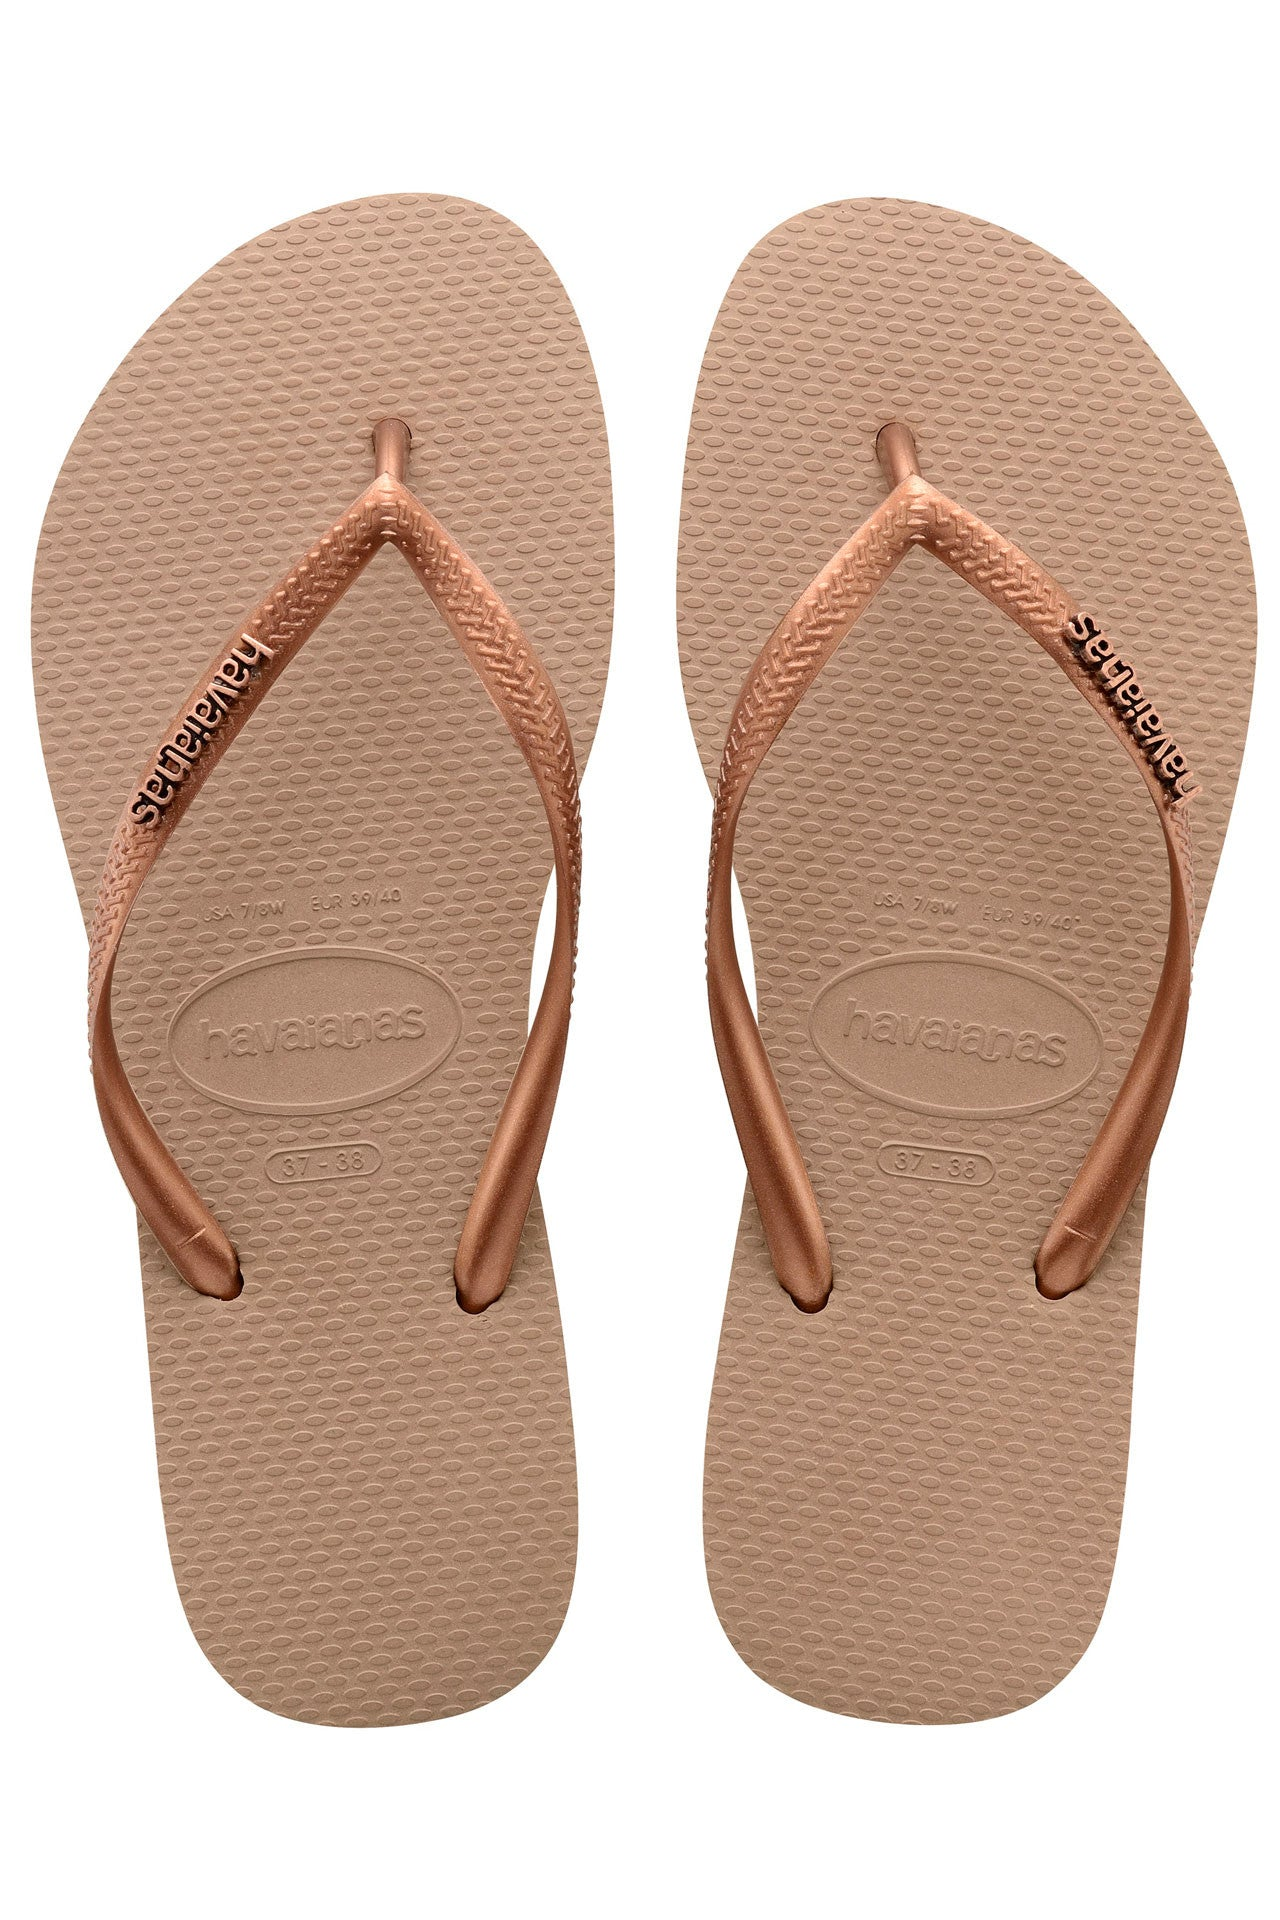 Havaianas Slim Logo Metallic in Rose/Dark Copper